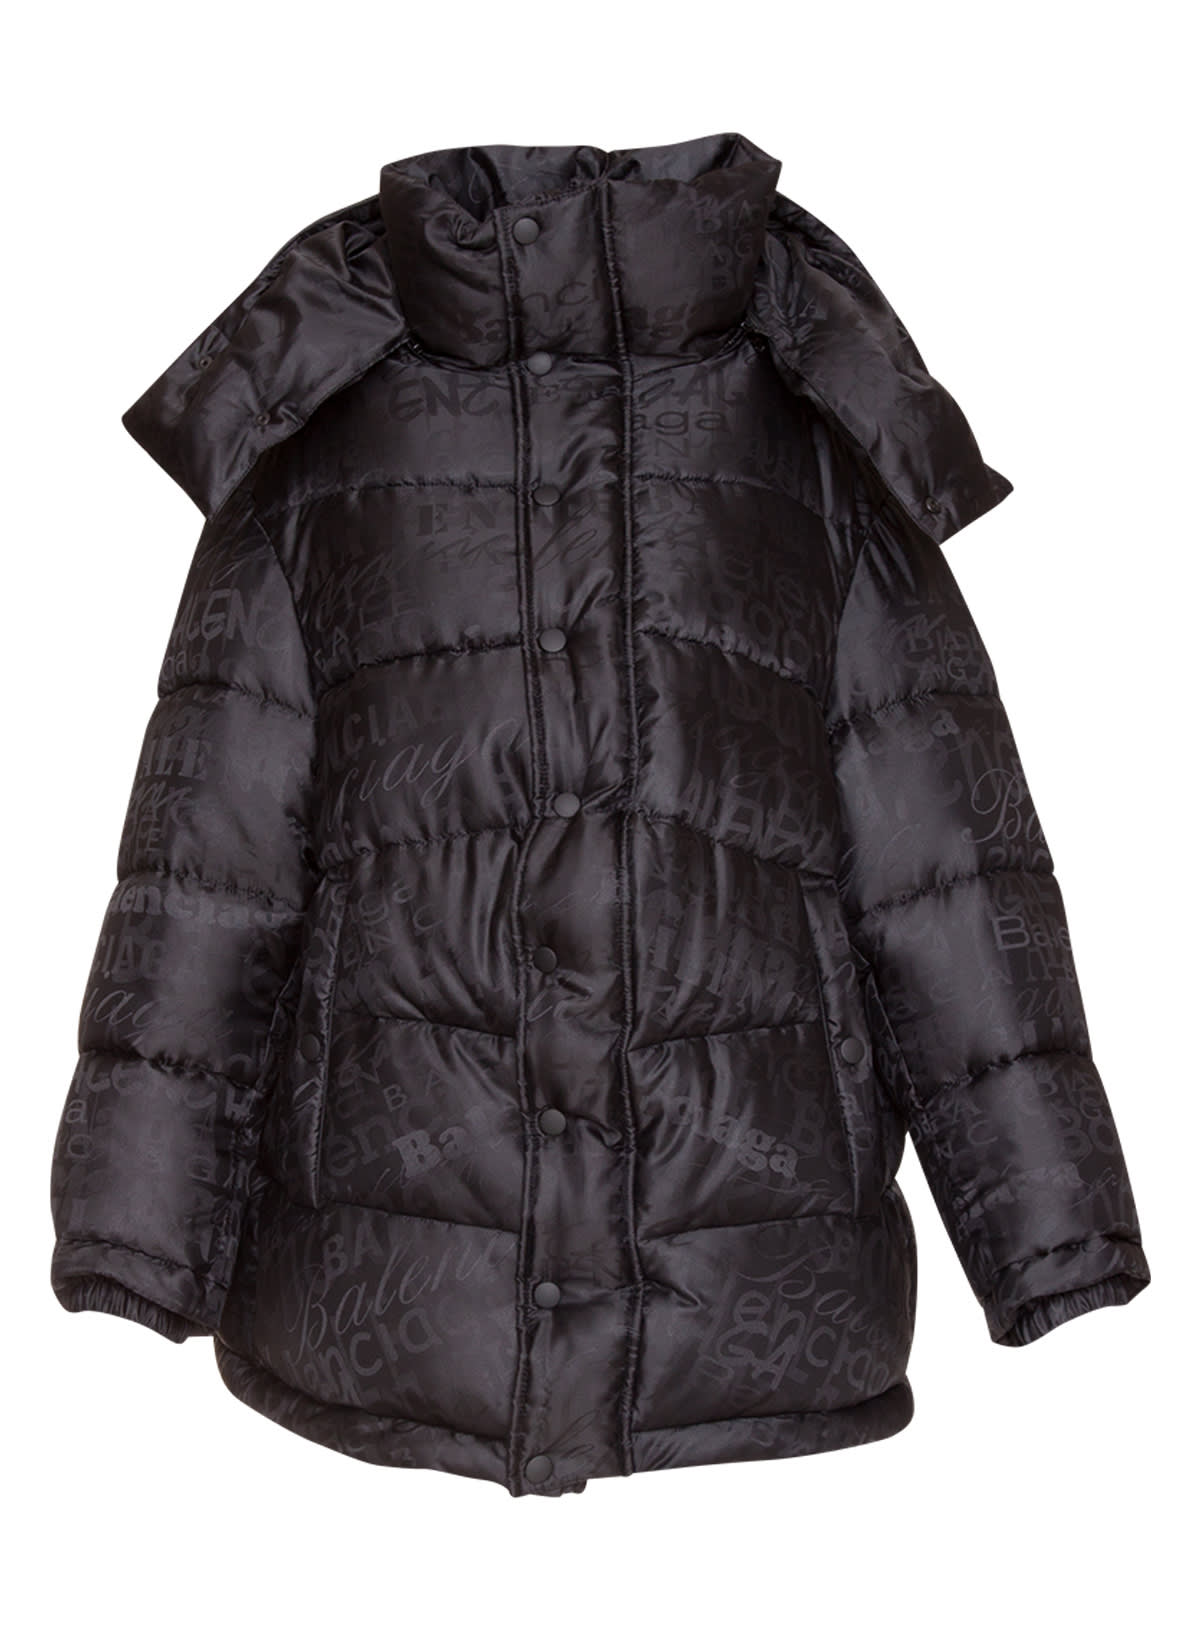 Balenciaga Padded Jacket